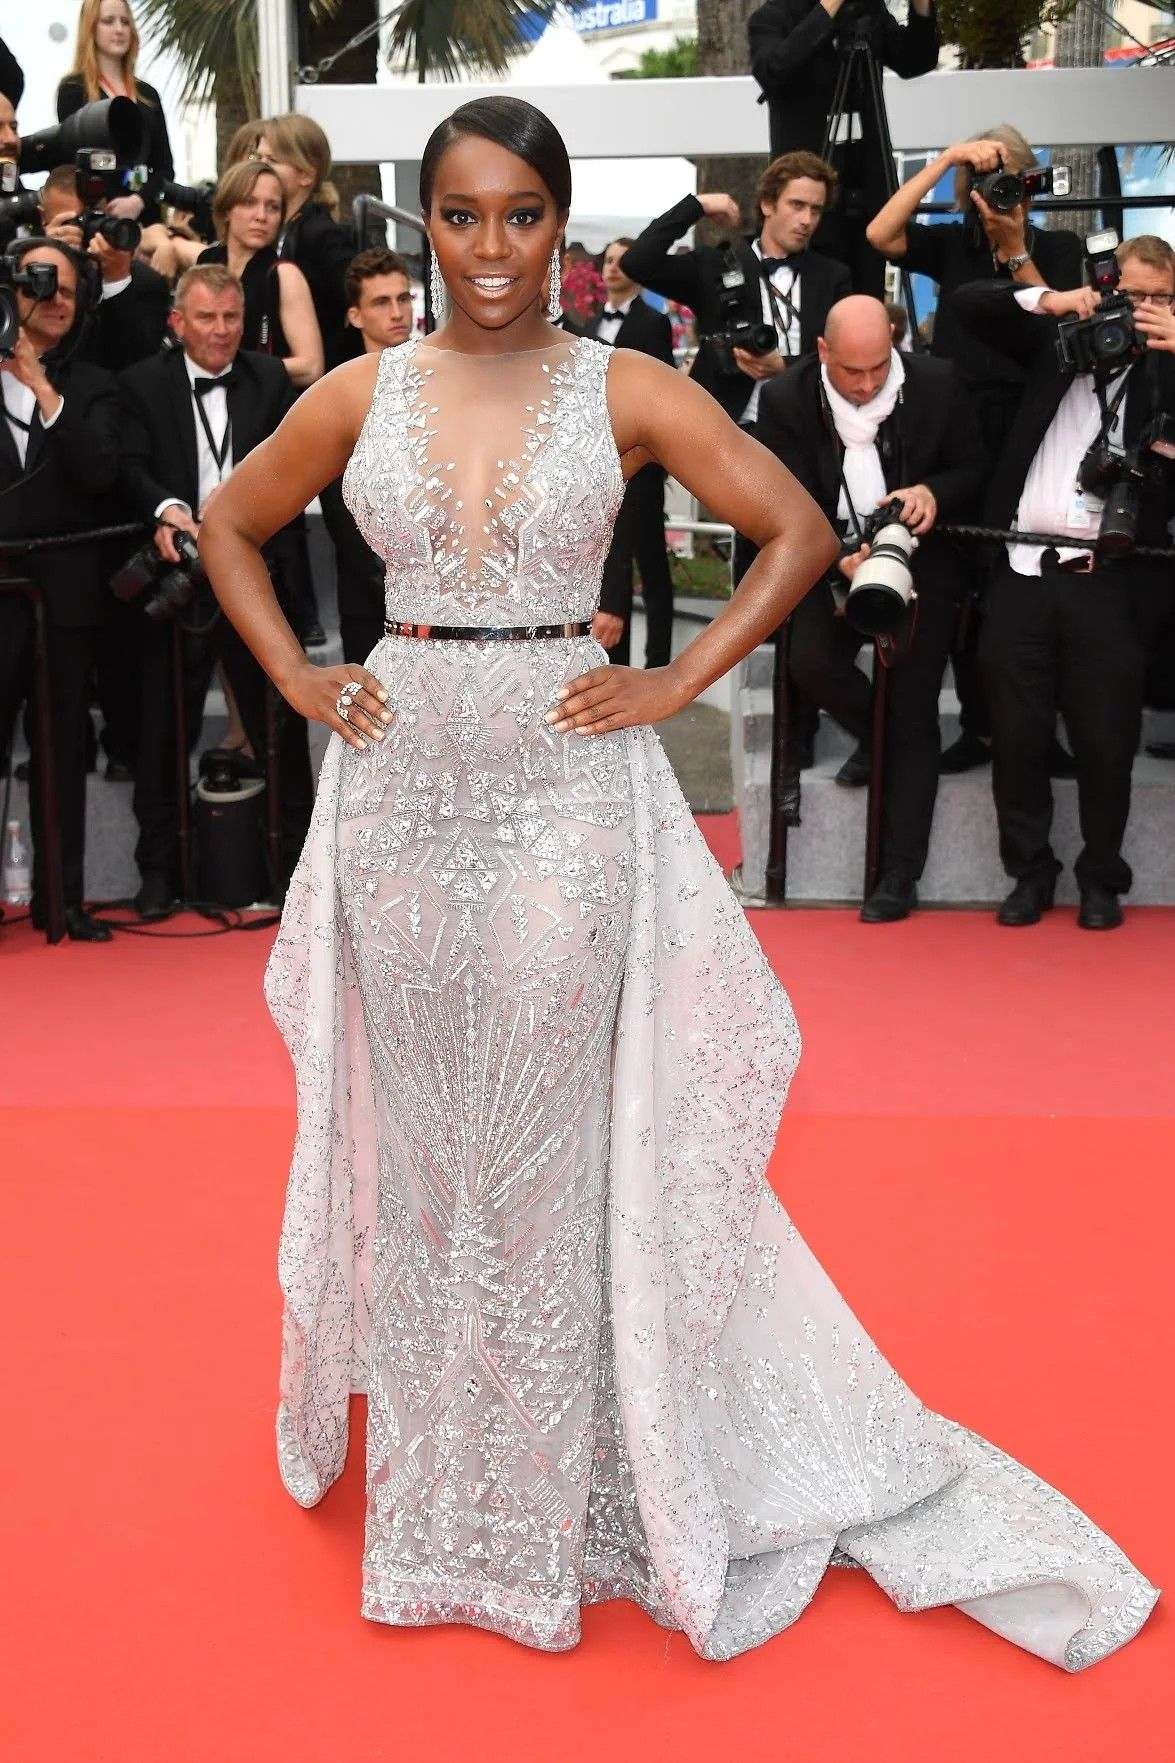 Cannes aja naomi king glistening in zuhair murad couture gown